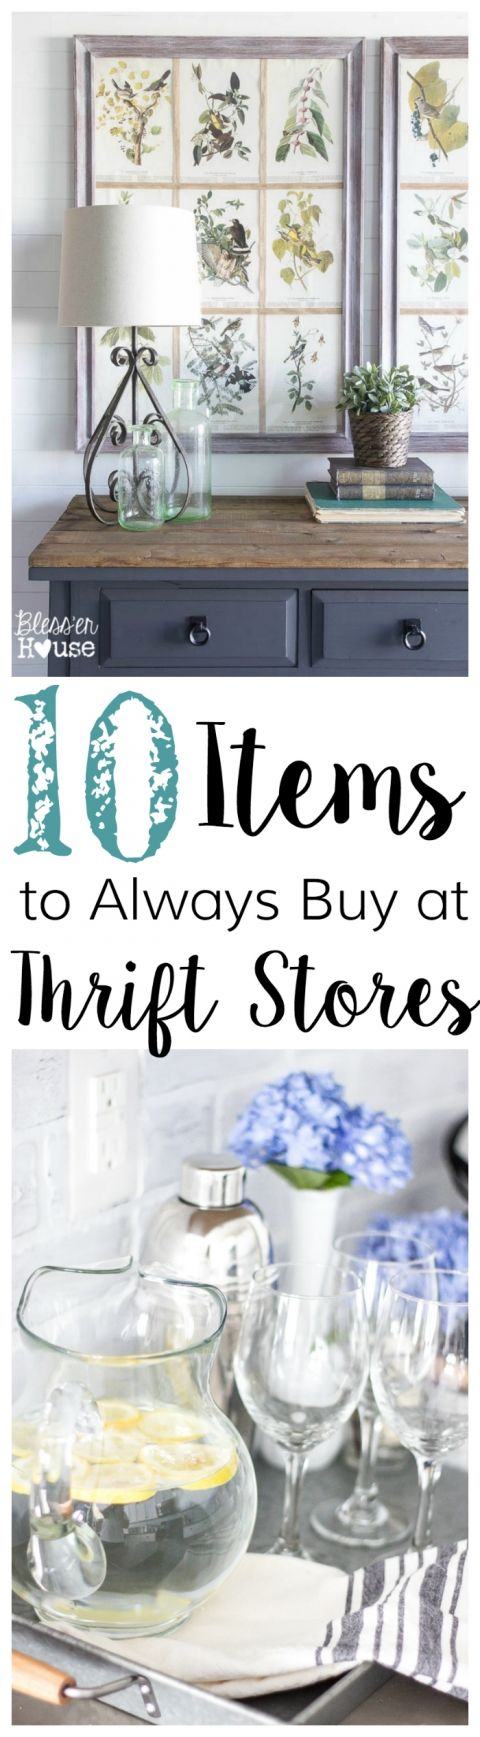 stores to buy home decor